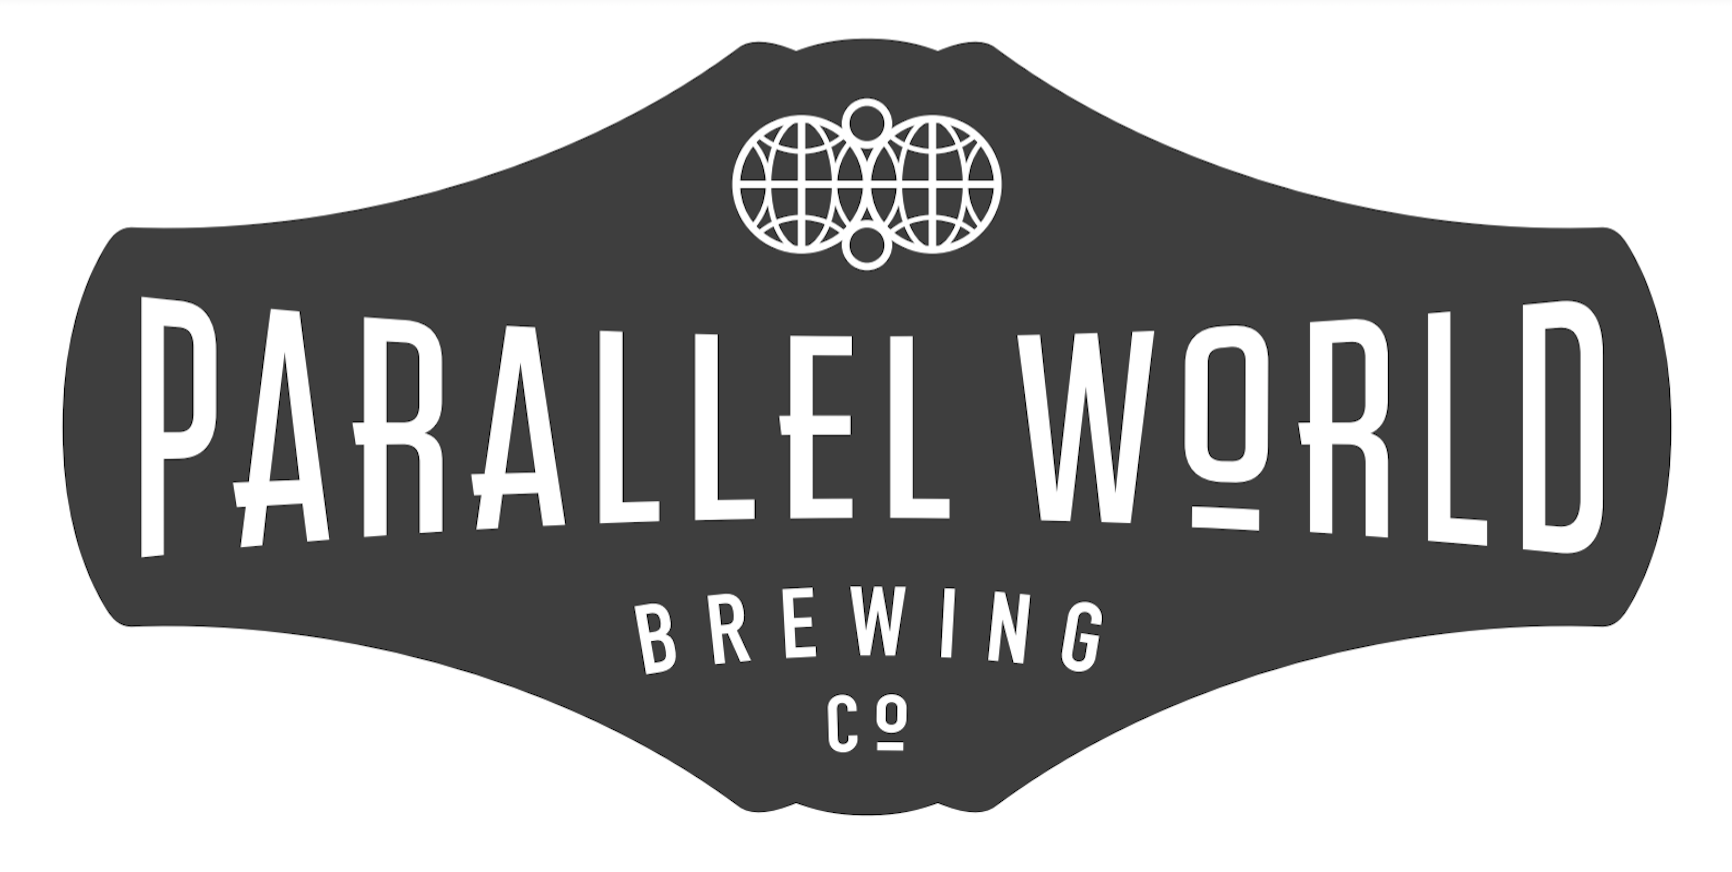 Parallel World Brewing - Best Goddamn Beer You Ever DrankSQUARE FEET - 10,000LOCATION - Mixed-use locations in Montgomery CountyAVAILABILITY - n/aTenant Representationwww.parallelworldbrewing.com